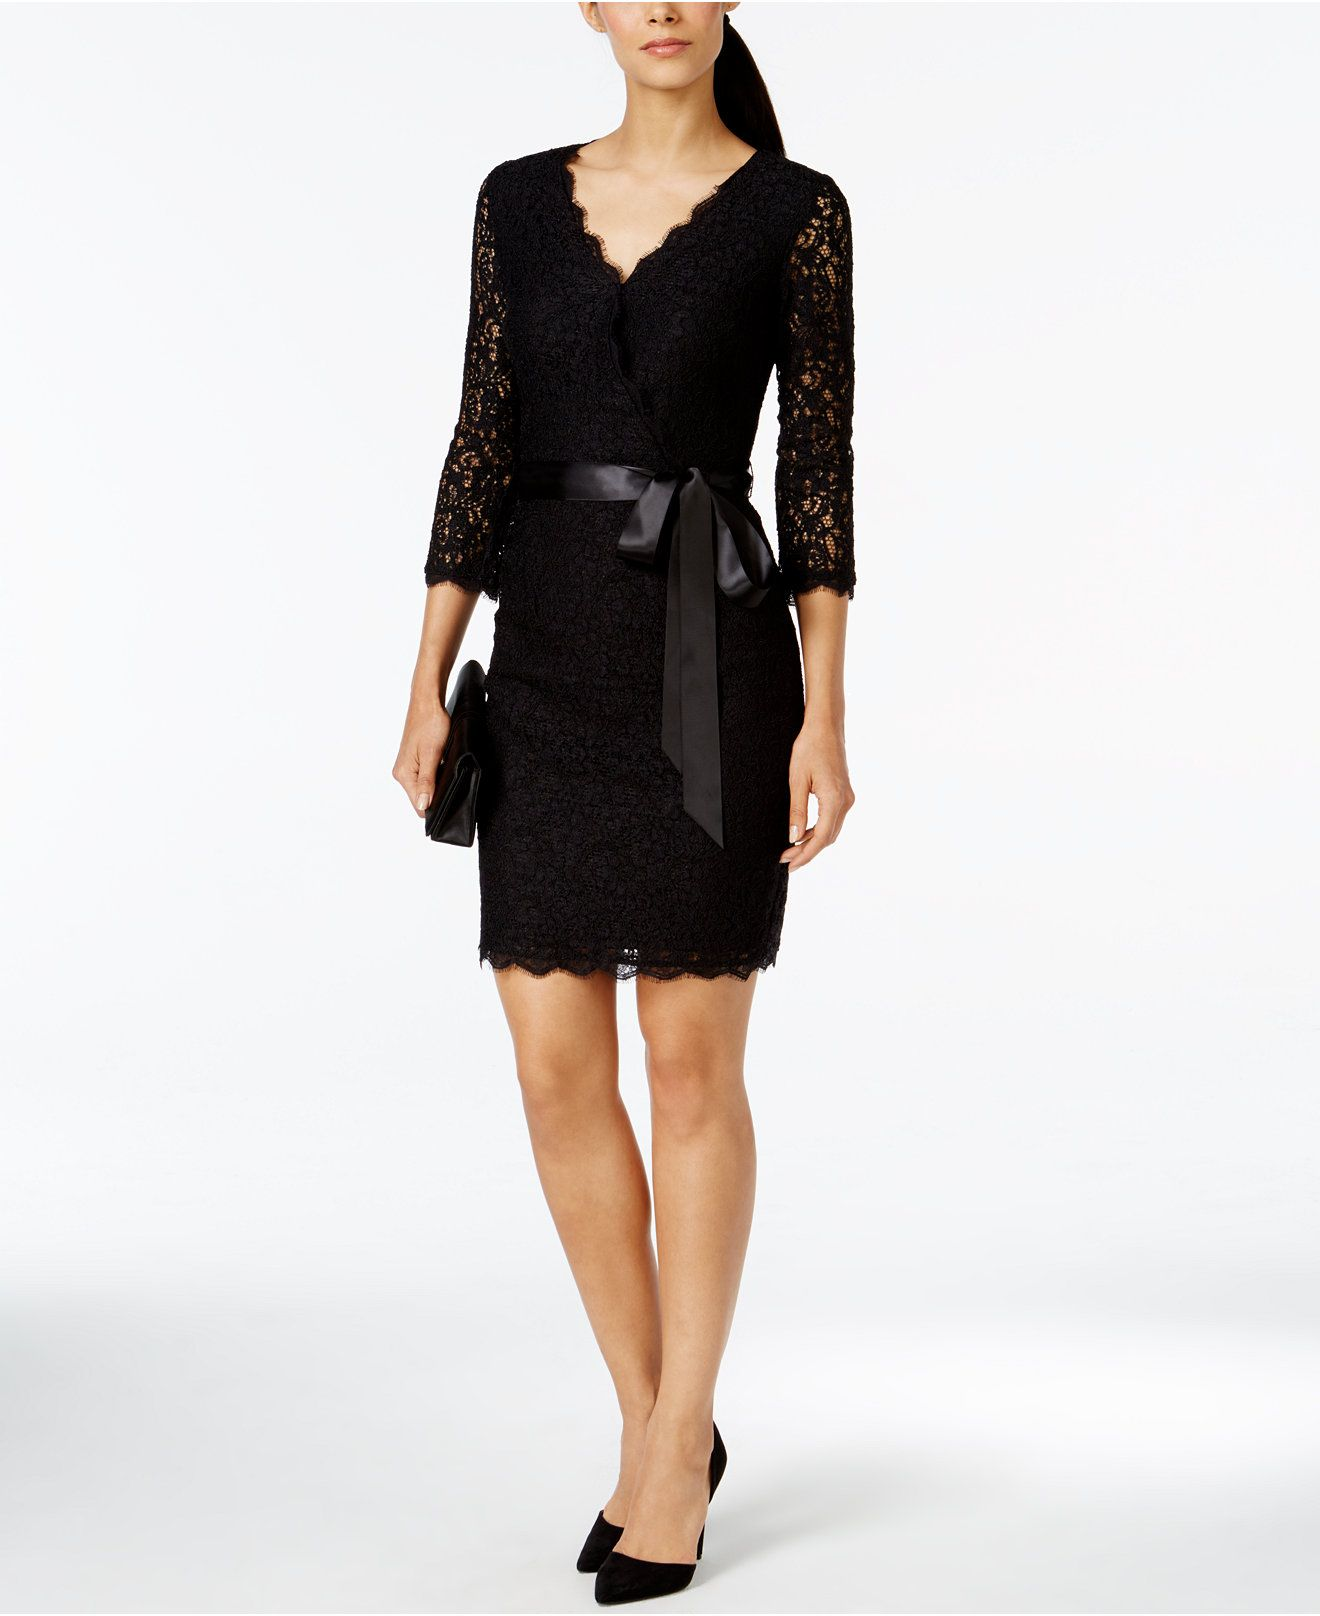 Adrianna Papell Lace Faux Wrap Belted Dress Dresses Women